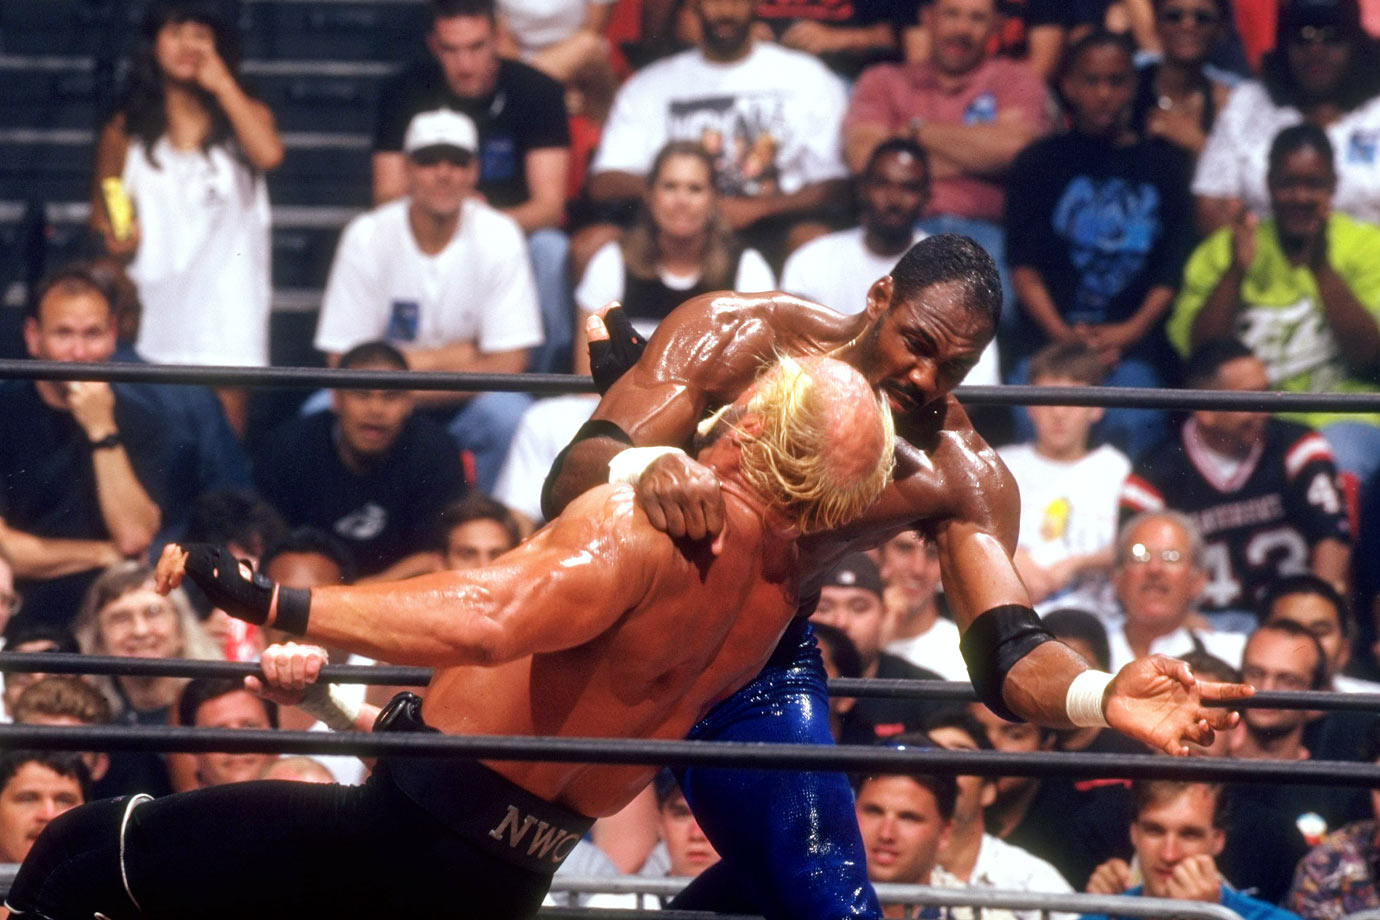 Karl Malone delivers a clothesline to 'Hollywood' Hulk Hogan during the WCW Bash at the Beach.